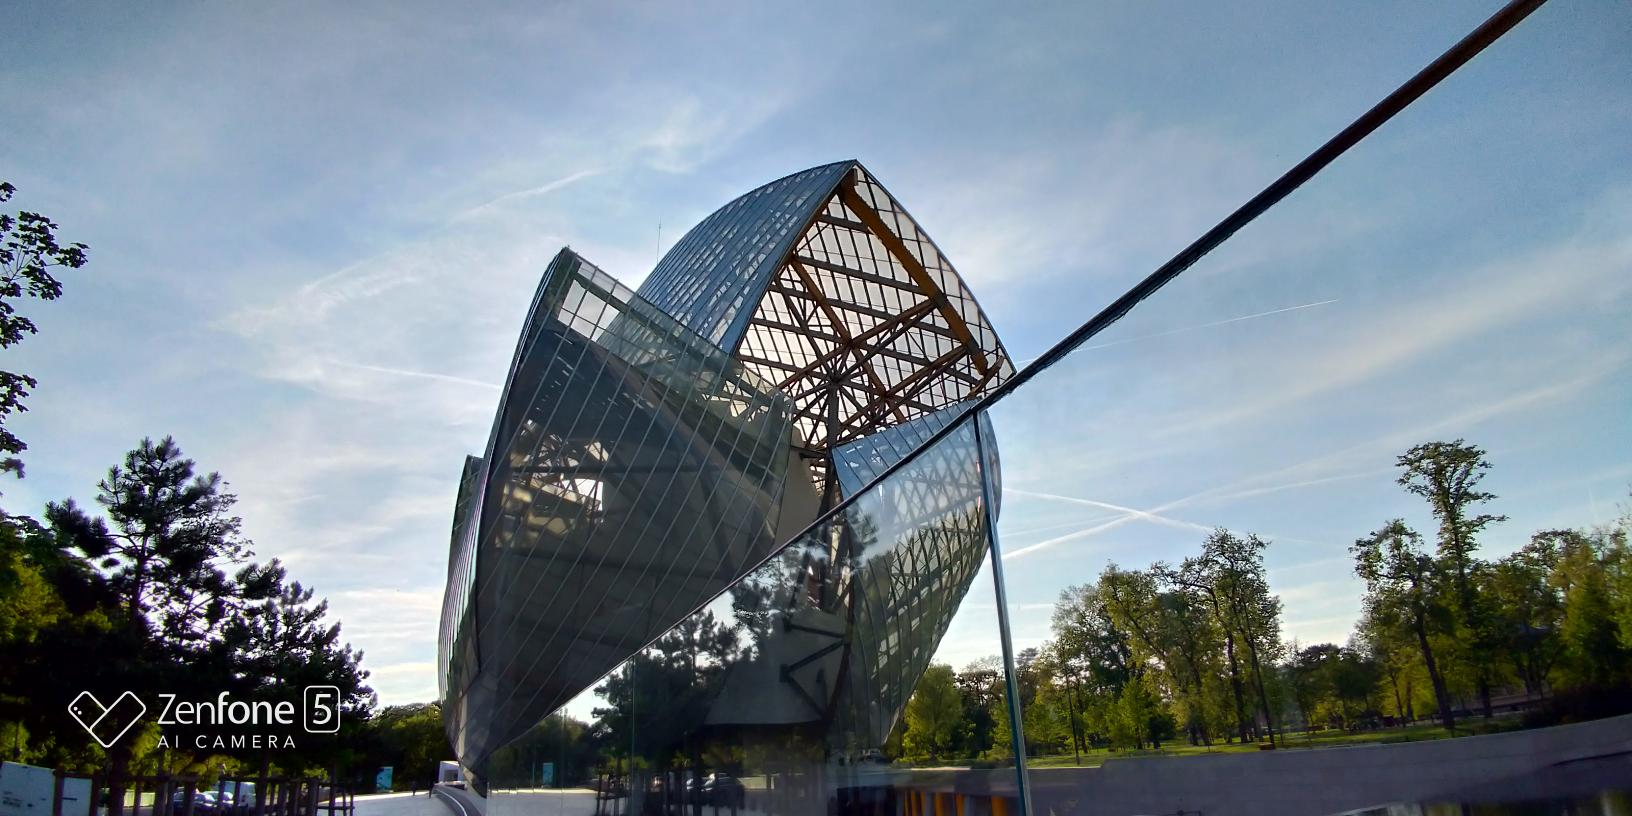 Fondation Louis Vuitton Zenfone 5